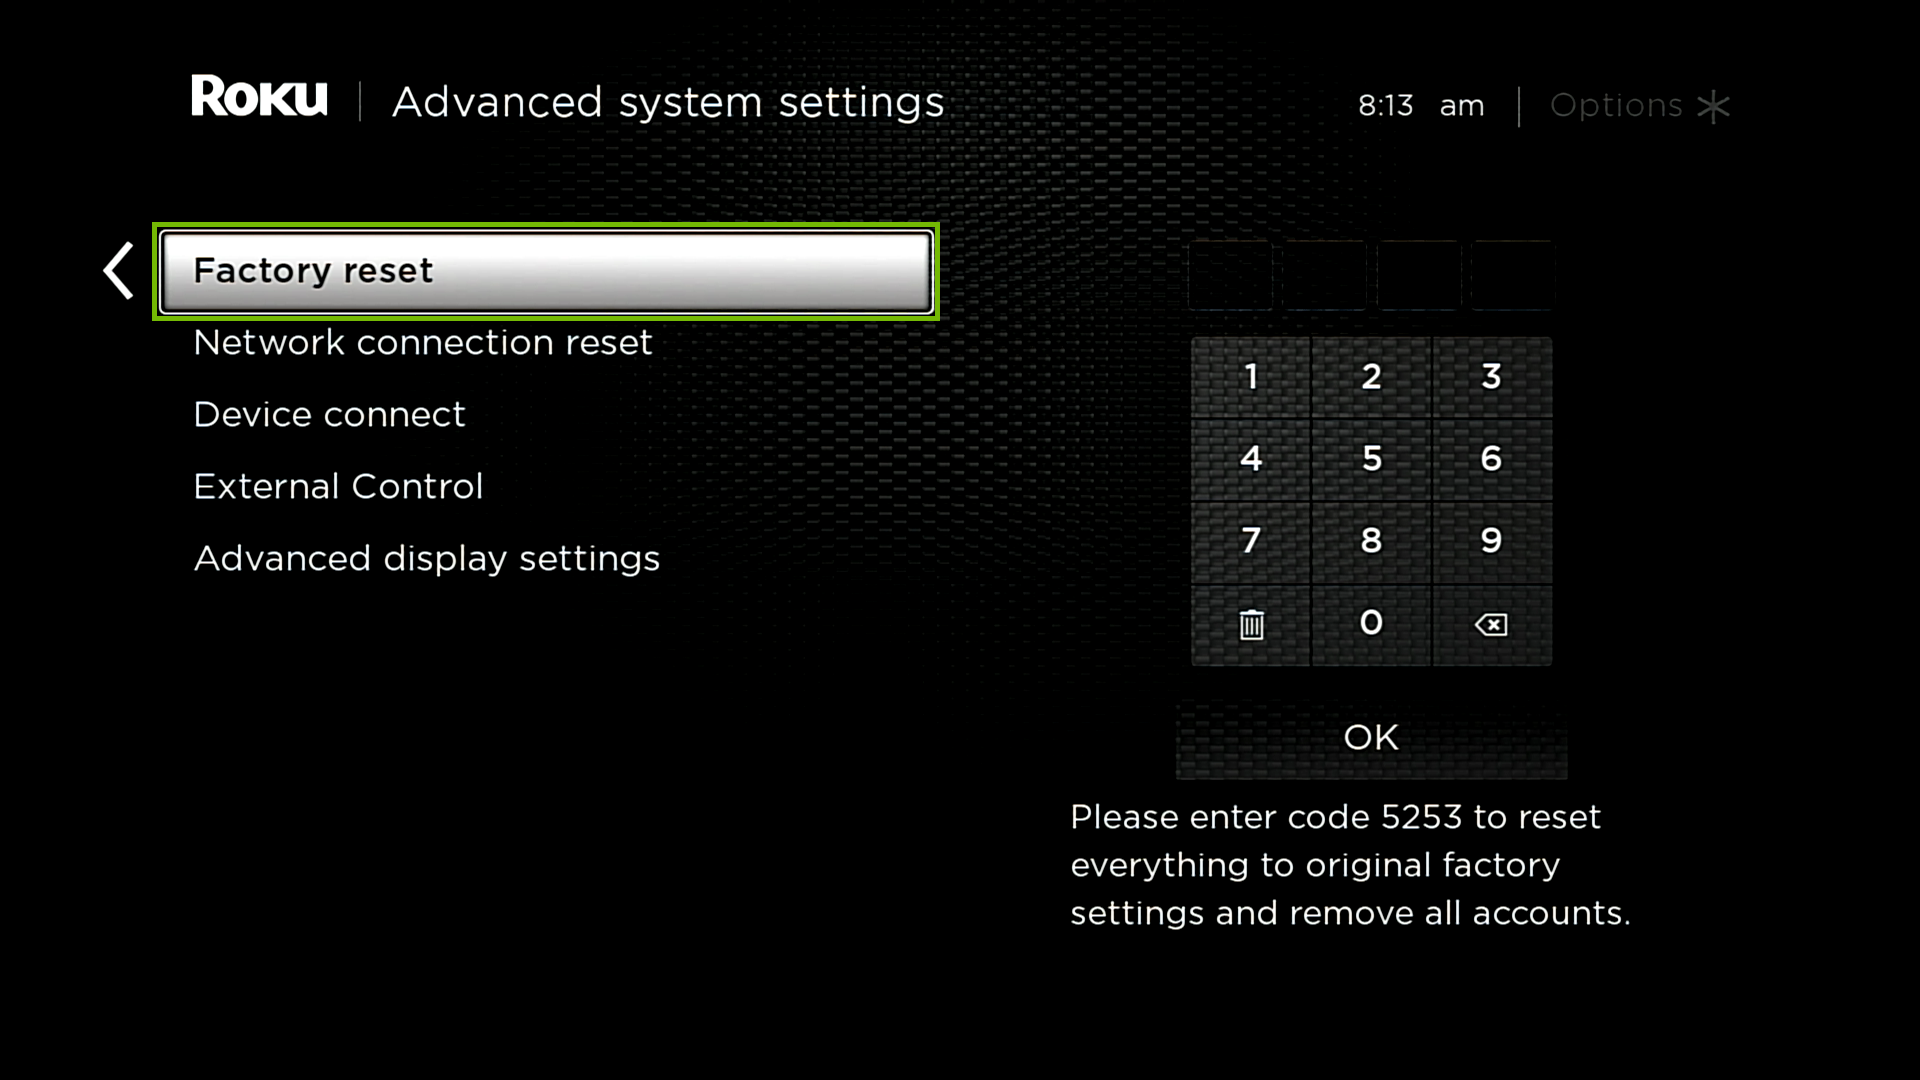 Advanced system settings with Factory reset highlighted.